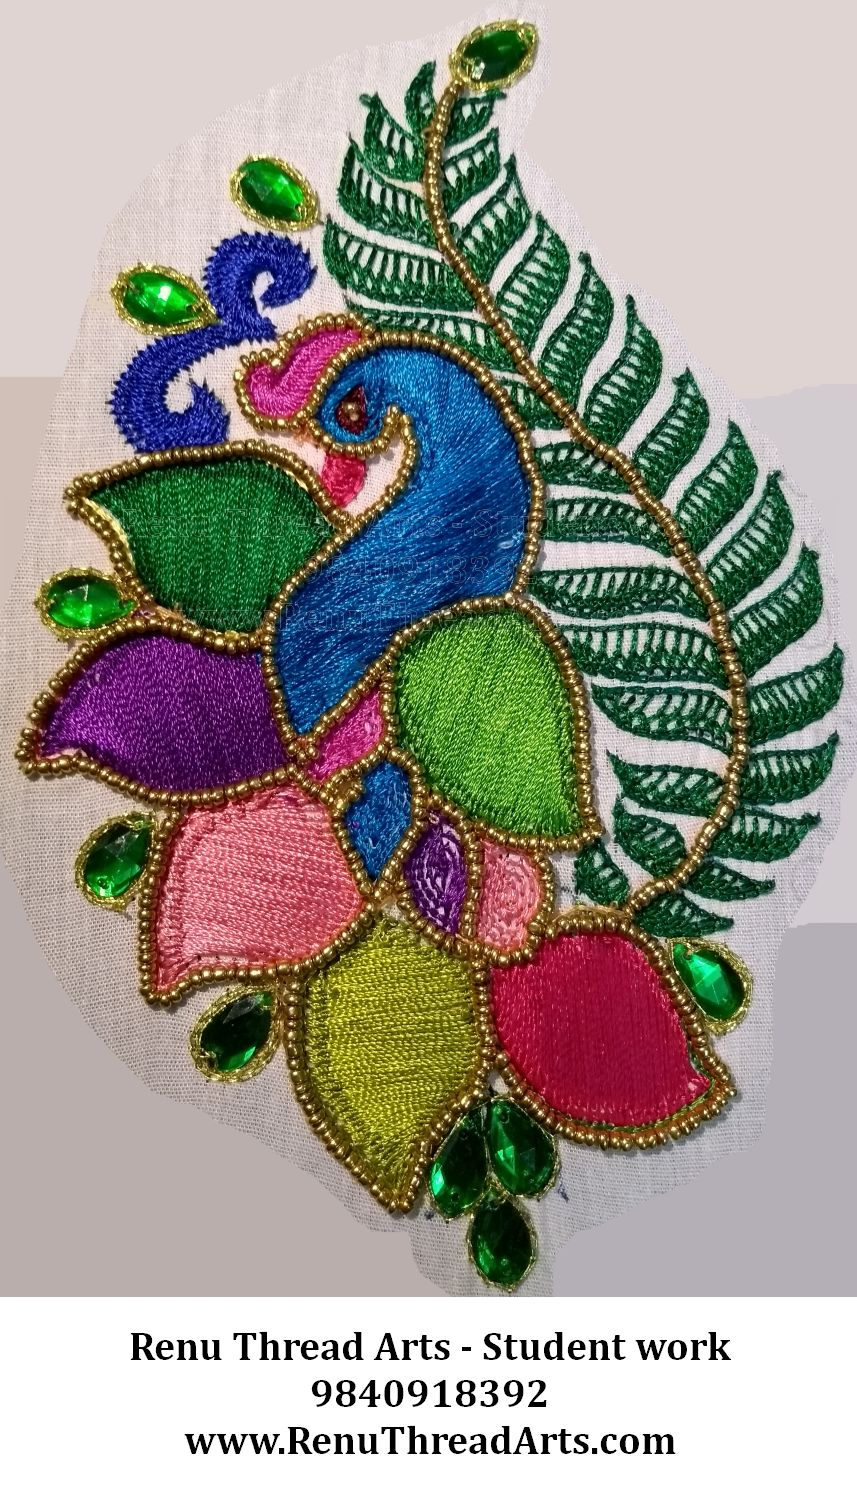 Aari embroidery basic level student project work with neat finish